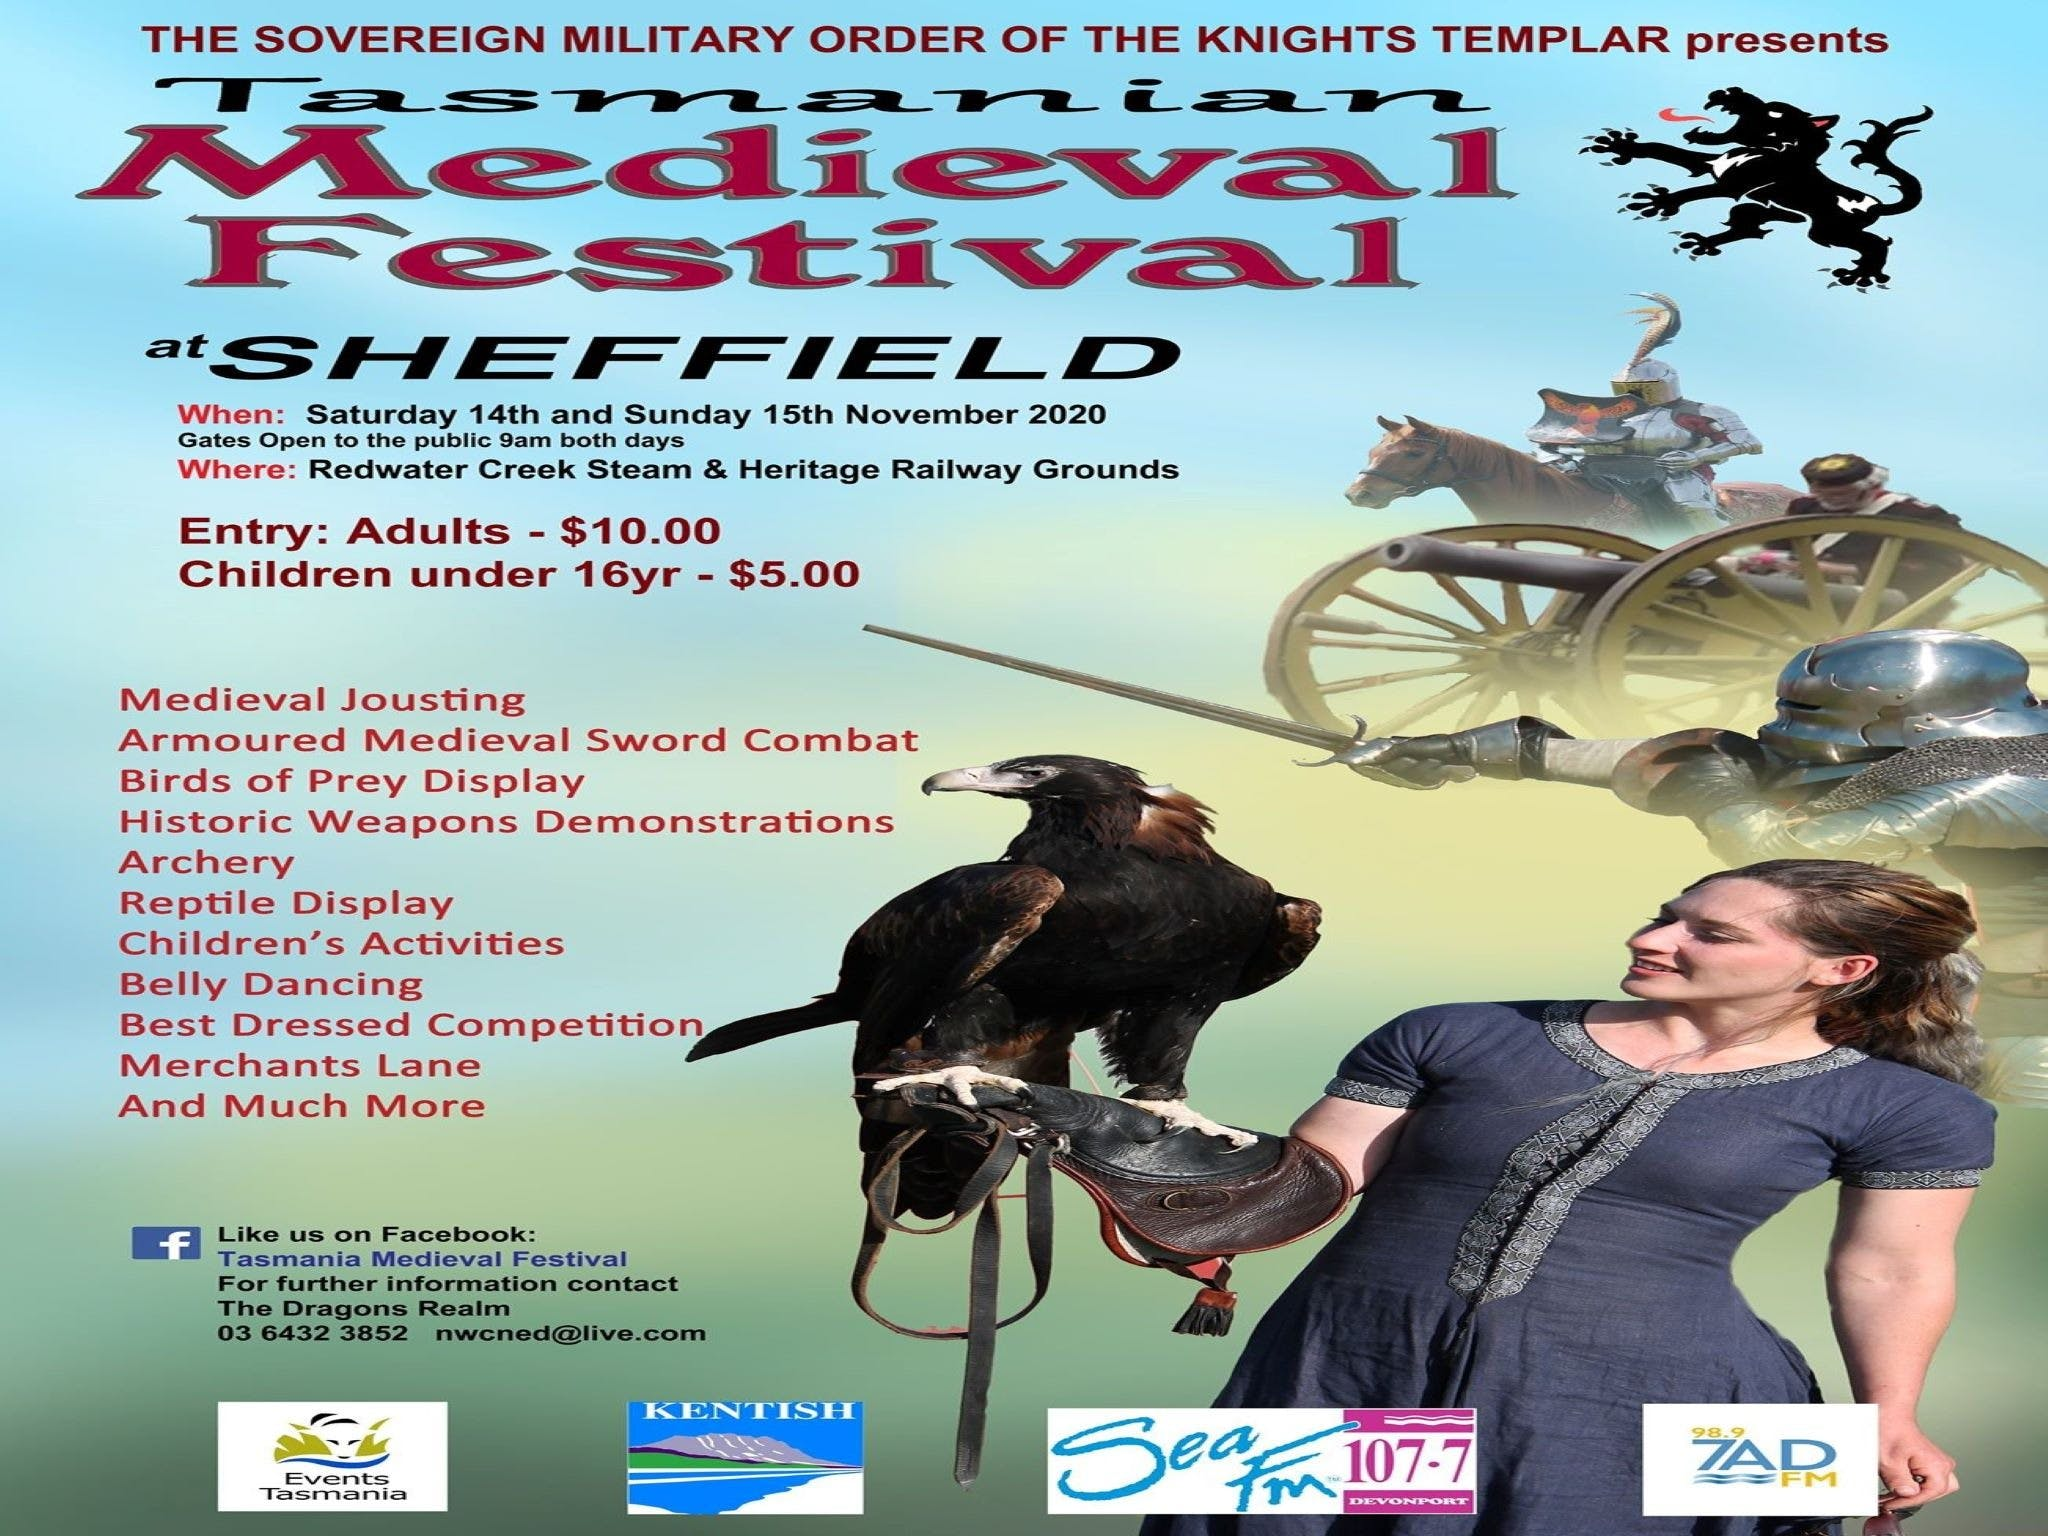 Sheffield Tasmania Medieval Festival 2020 - New South Wales Tourism